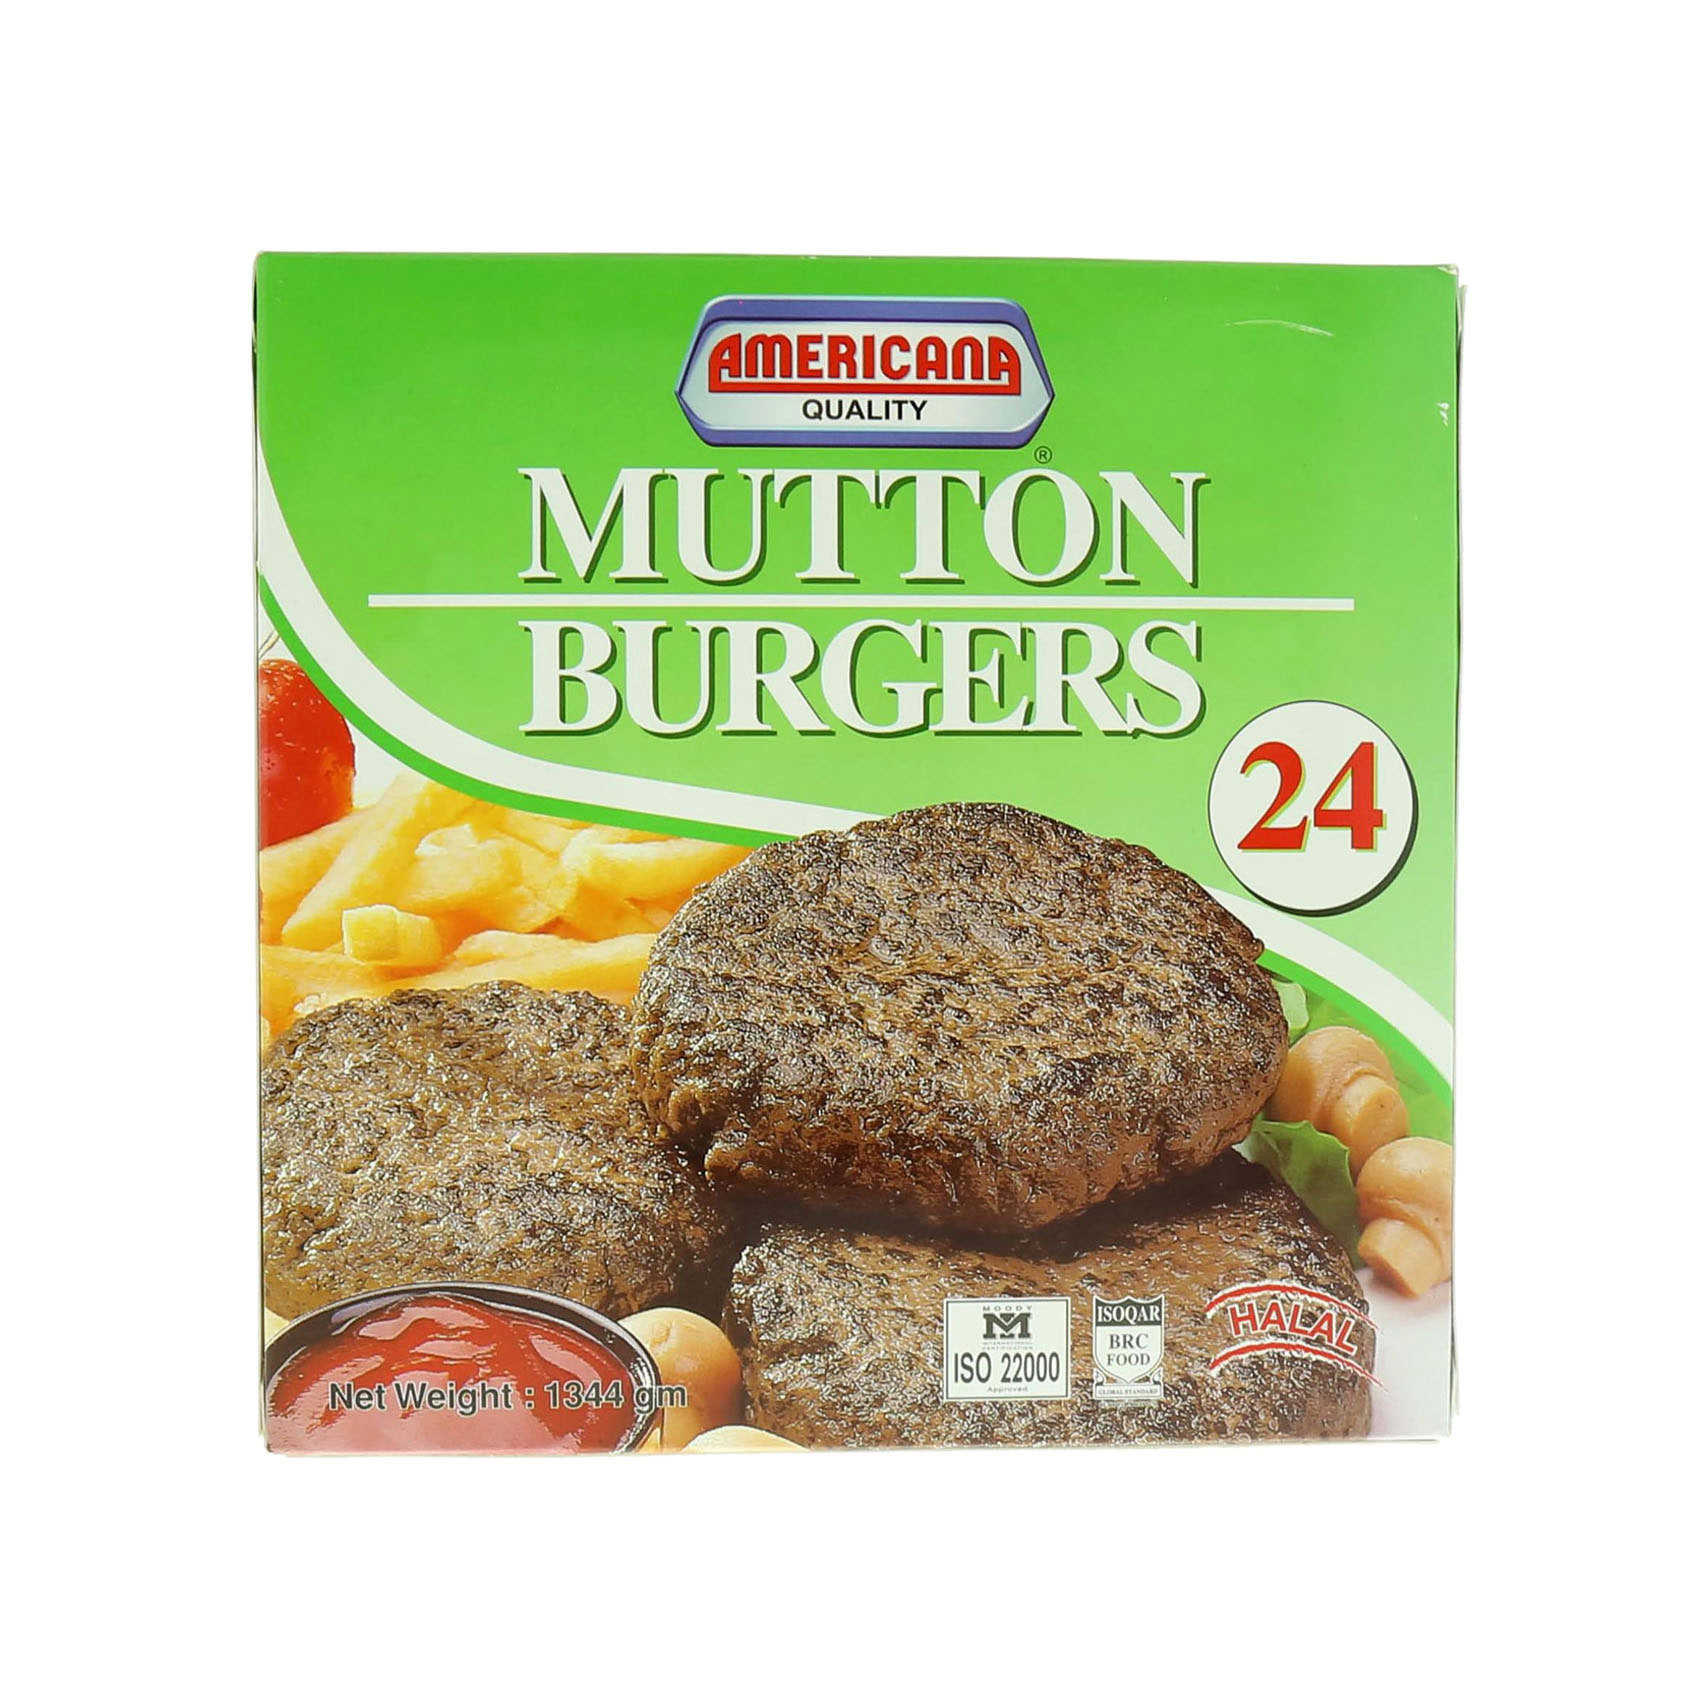 AMERICANA BURGER MUTTON 1.344KG